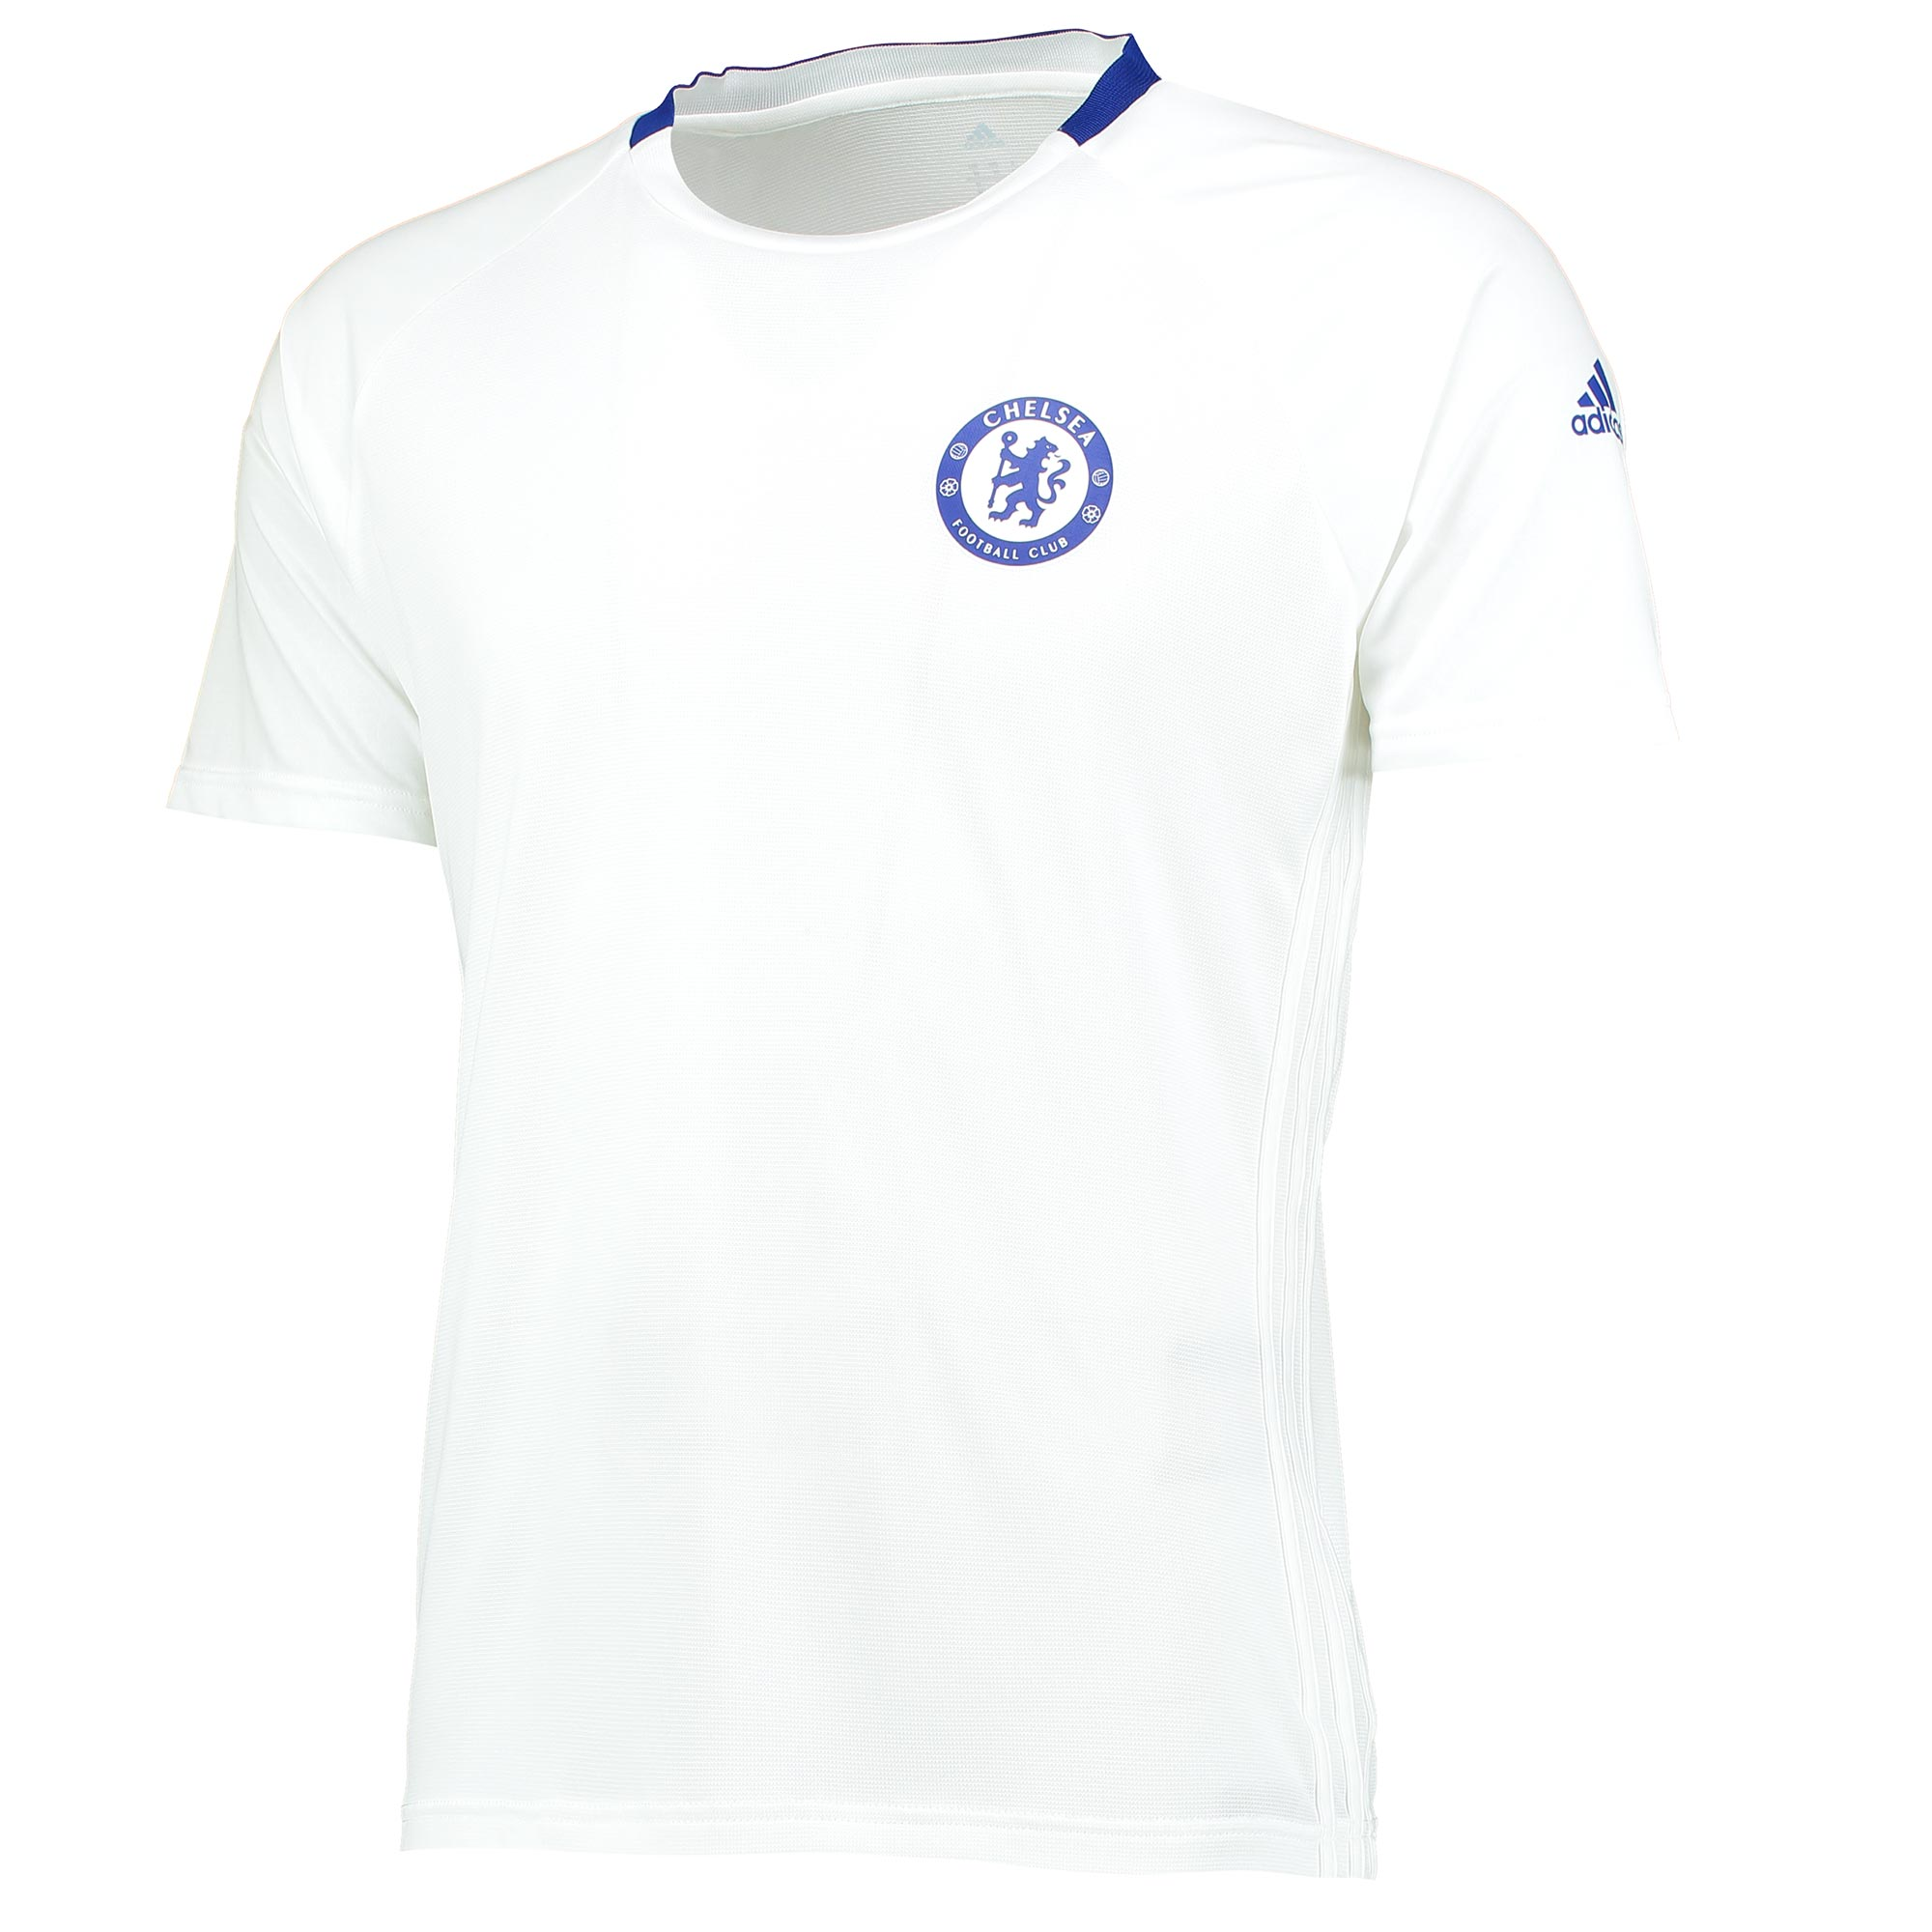 Chelsea Cup Training Jersey - White   With advanced climacool® technology helping ensure a cool and comfortable experience, this all-new Chelsea Cup Training Jersey carries the Blues' colours and crest with a champion's pride.   A crewneck jersey with flat-knit ribbed insert, this official Chelsea jersey's raglan sleeves have an all-over embossed tonal graphic, making the item an ideal addition to any fan's training collection.   Details: • Slim fit w/adidas 3 Stripes on sides • Ventilated climacool® technology • Crewneck w/contrast flat-knit ribbed insert • Raglan sleeves w/all-over embossed tonal graphic • Chelsea club crest printed on left chest • adidas brandmark printed on left sleeve • 81% polyester / 19% nylon piqué